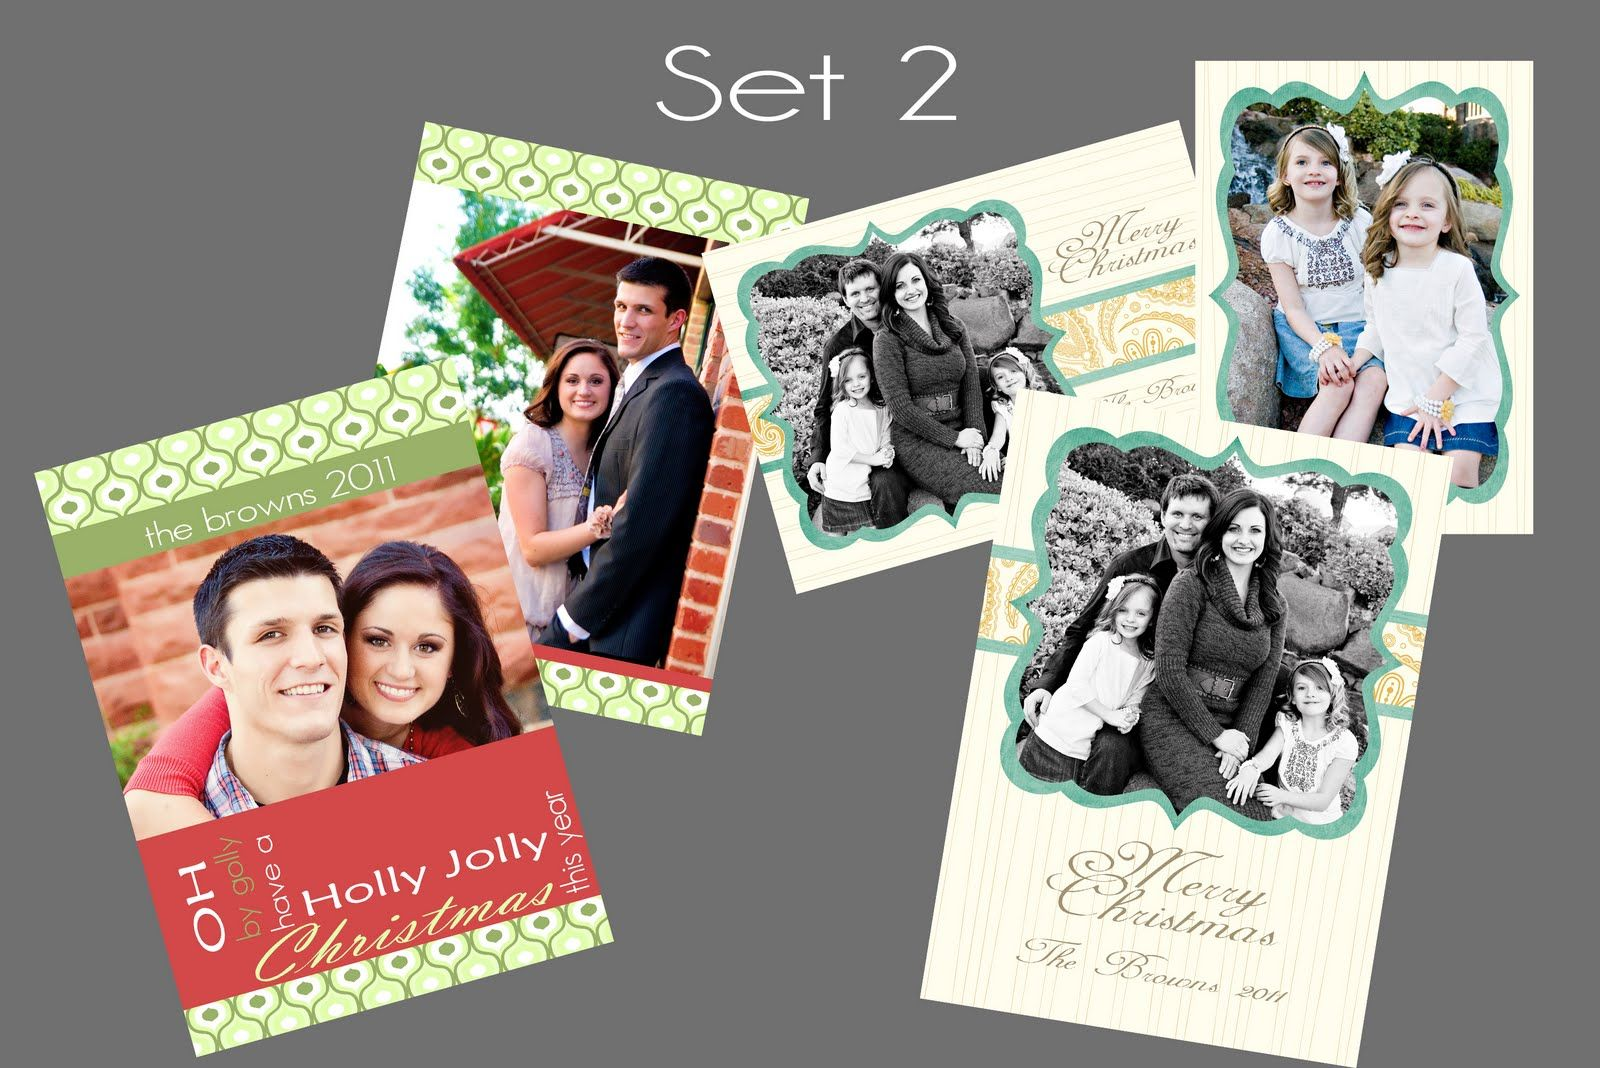 15 For 4 Sets Of Christmas Card Templates For Photographers Or Photoshop Users Photoshop Actions For Photographers Christmas Card Template Photoshop